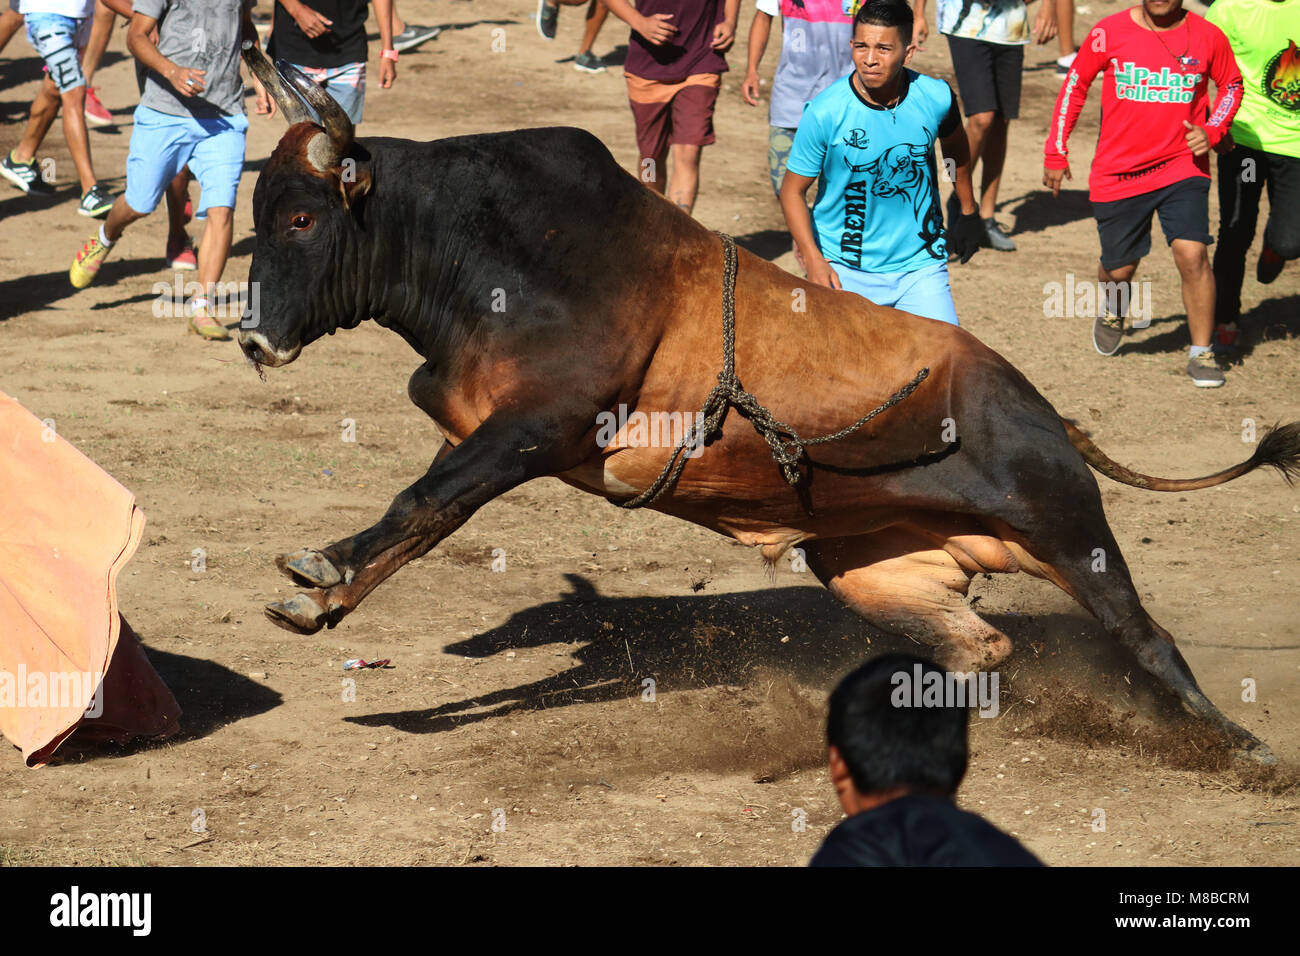 This picture was taken in a Costa Rican traditional activity. - Stock Image